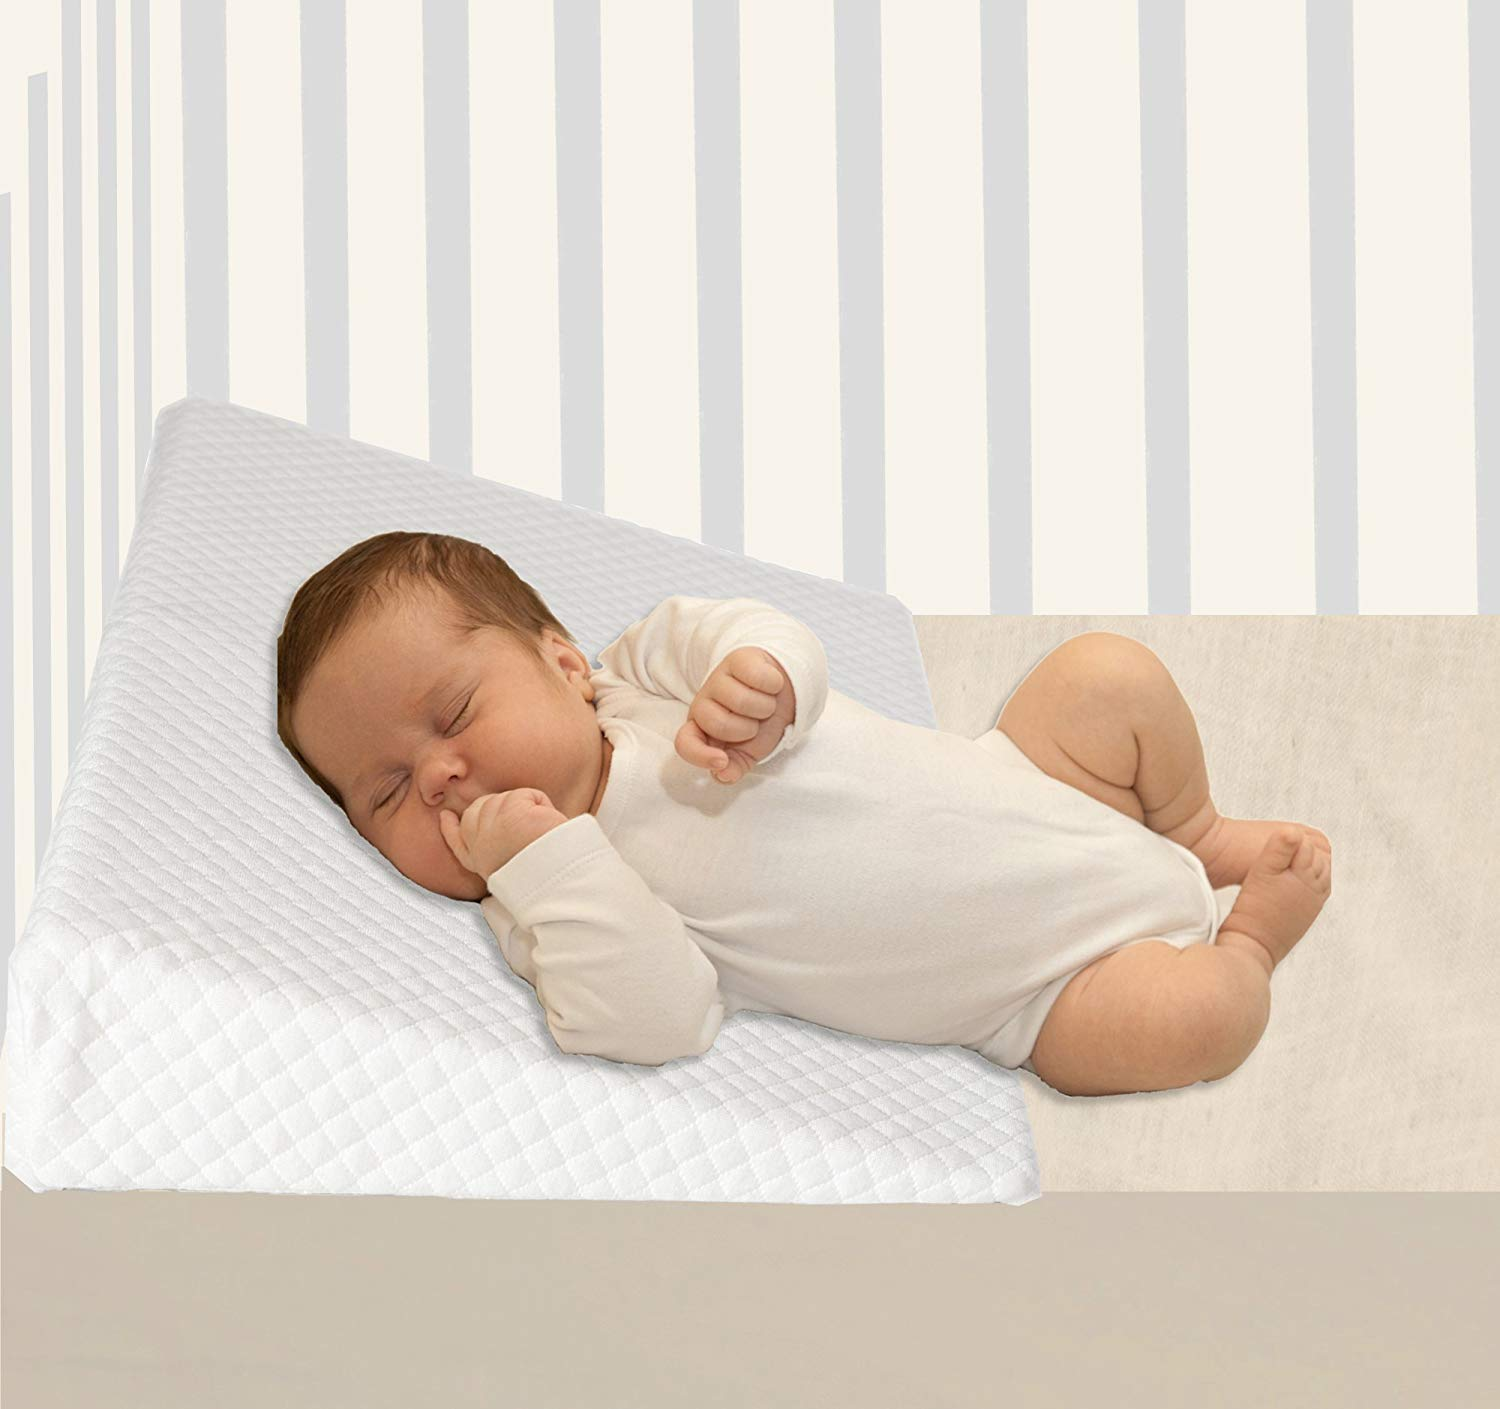 Baby Hiccapop Foldable Safe Lift Universal Crib Wedge For Baby Mattress And Sleep Ideal Gift For All Occasions Bed Pillows